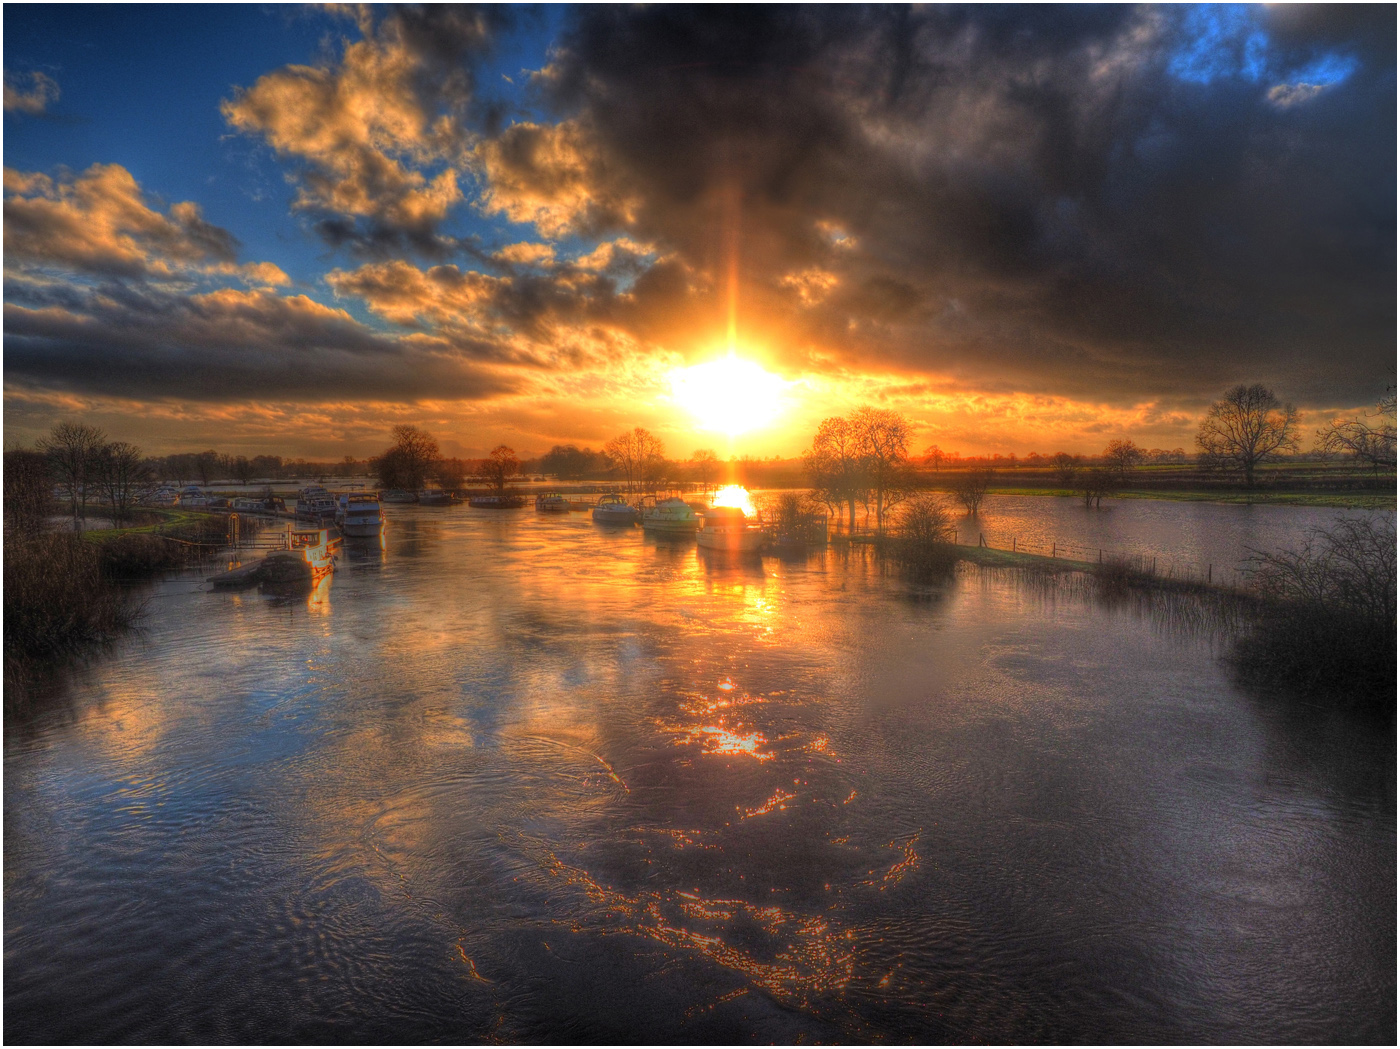 3__Sunset Reflected on the Flooded Ouse_Tim Evans.jpg